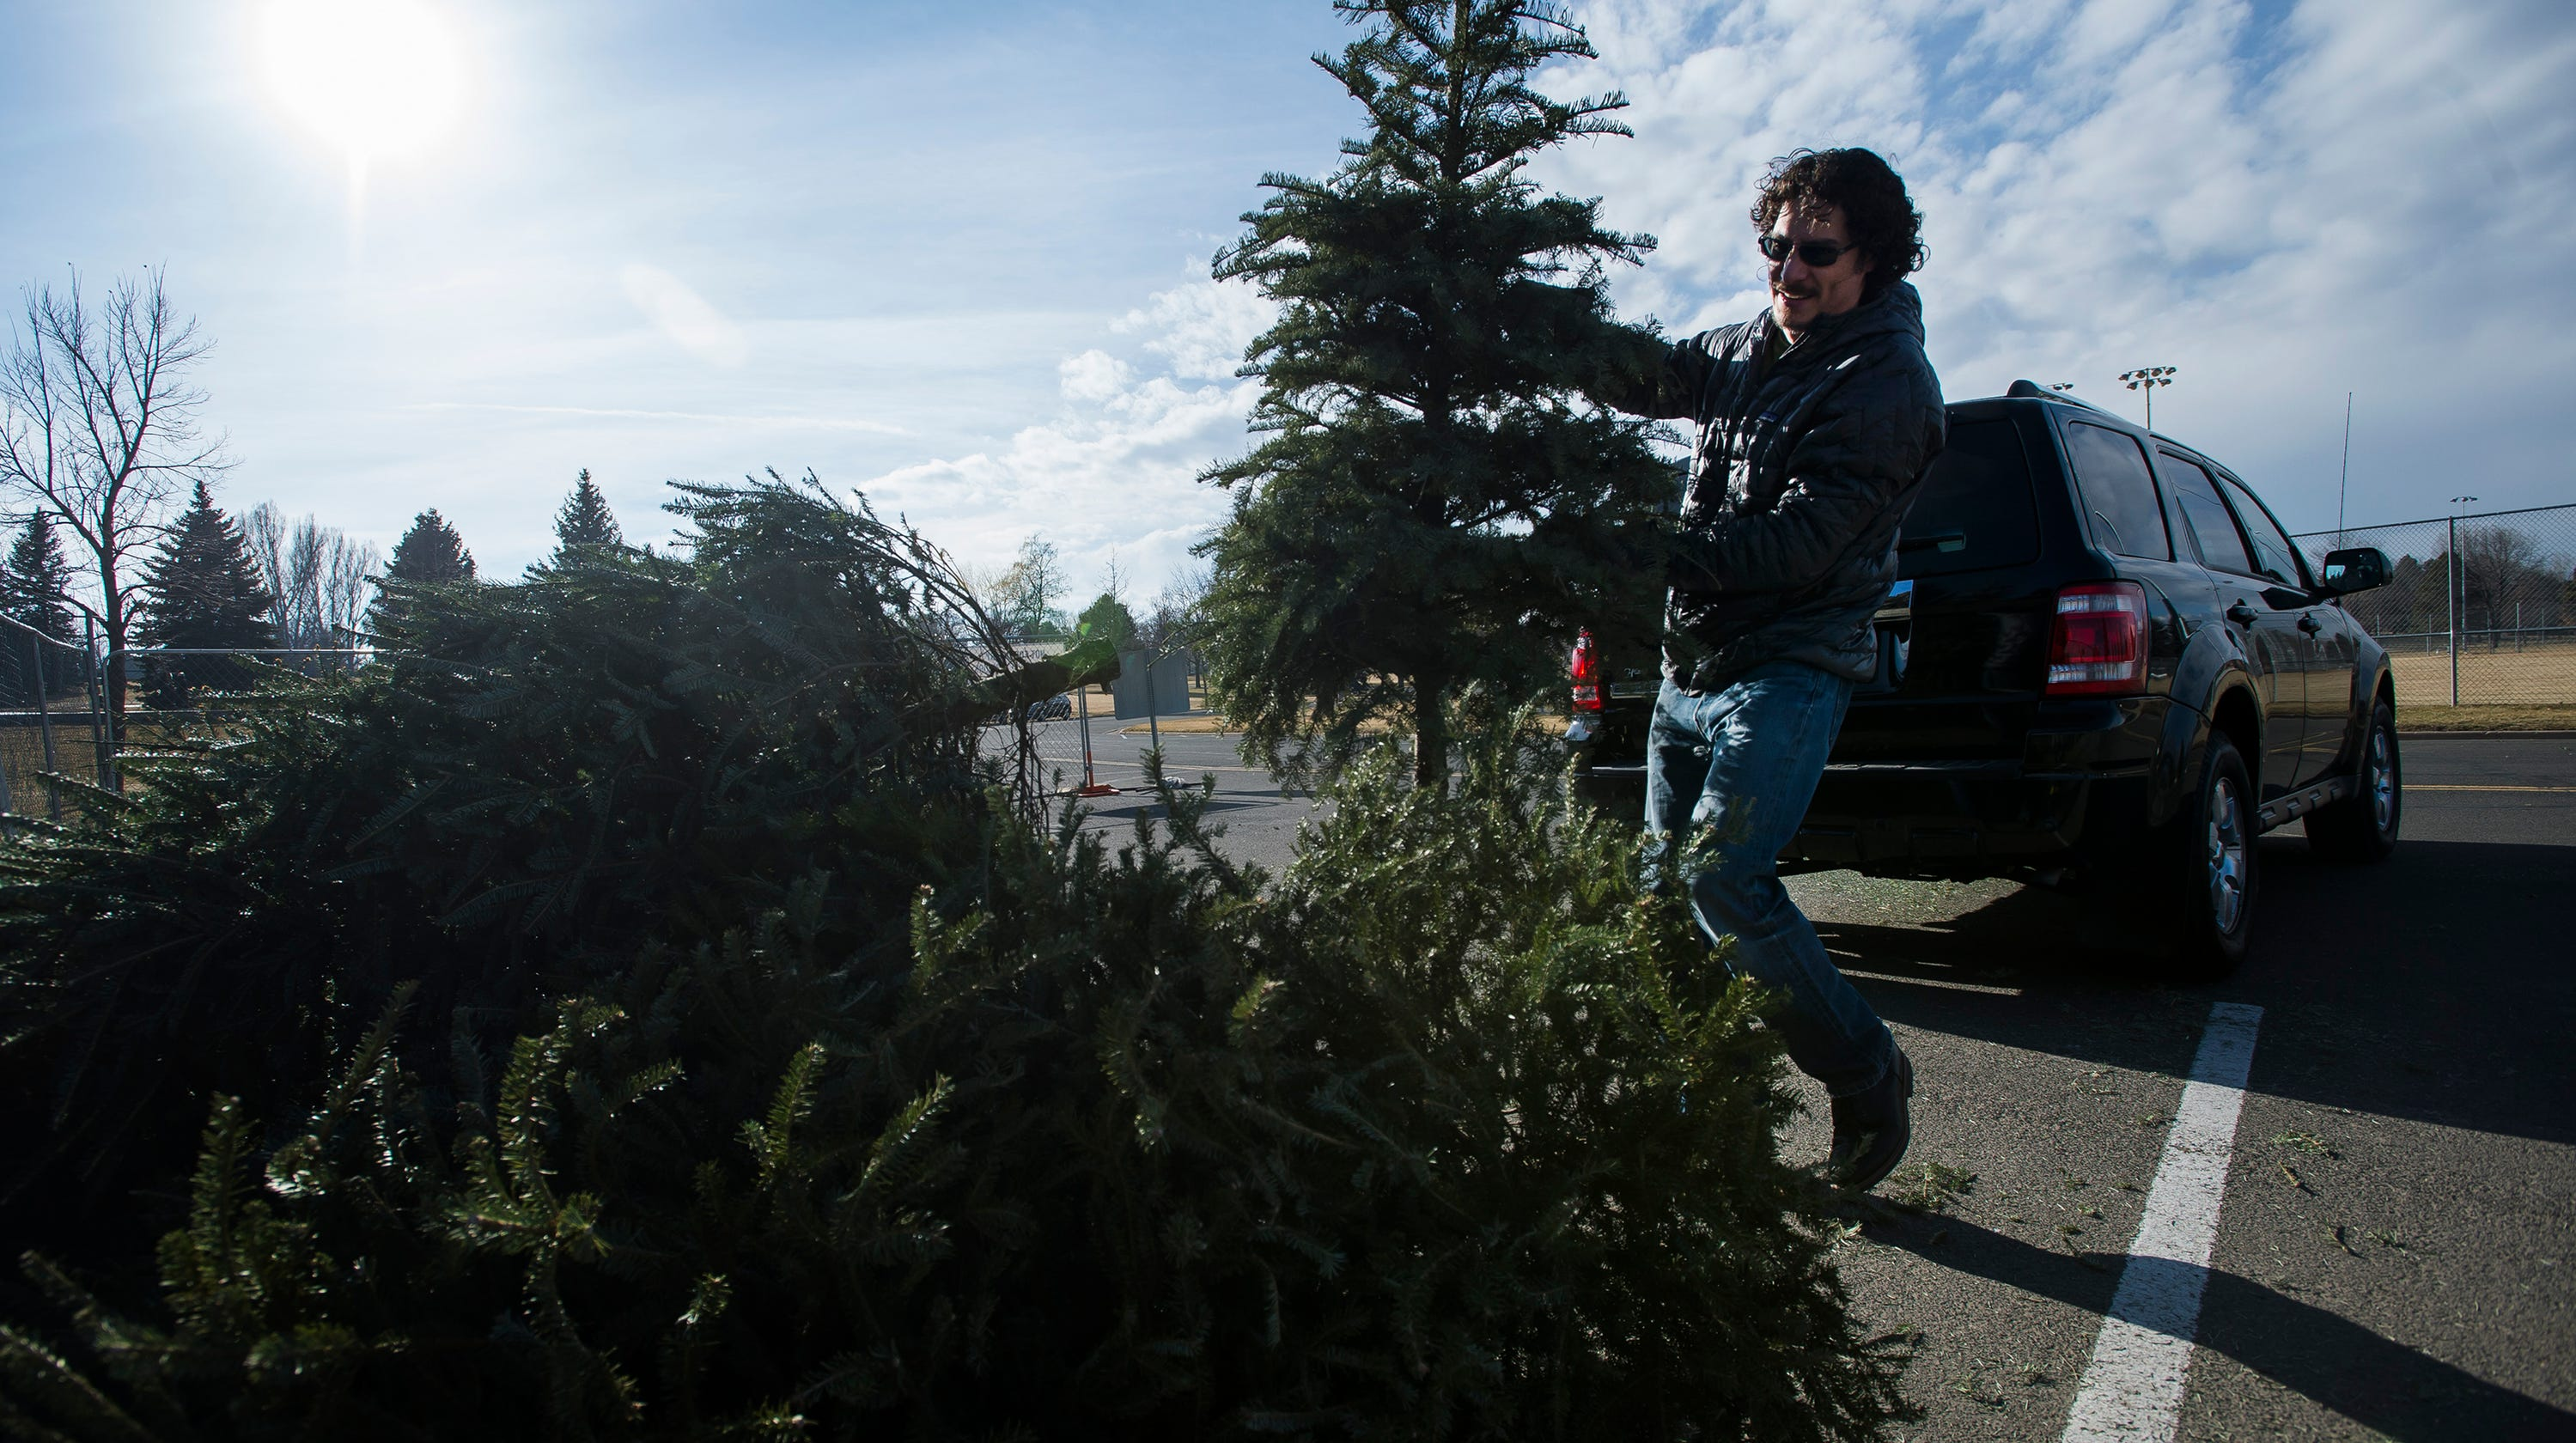 How to recycle Christmas trees and wrapping paper in Fort Collins